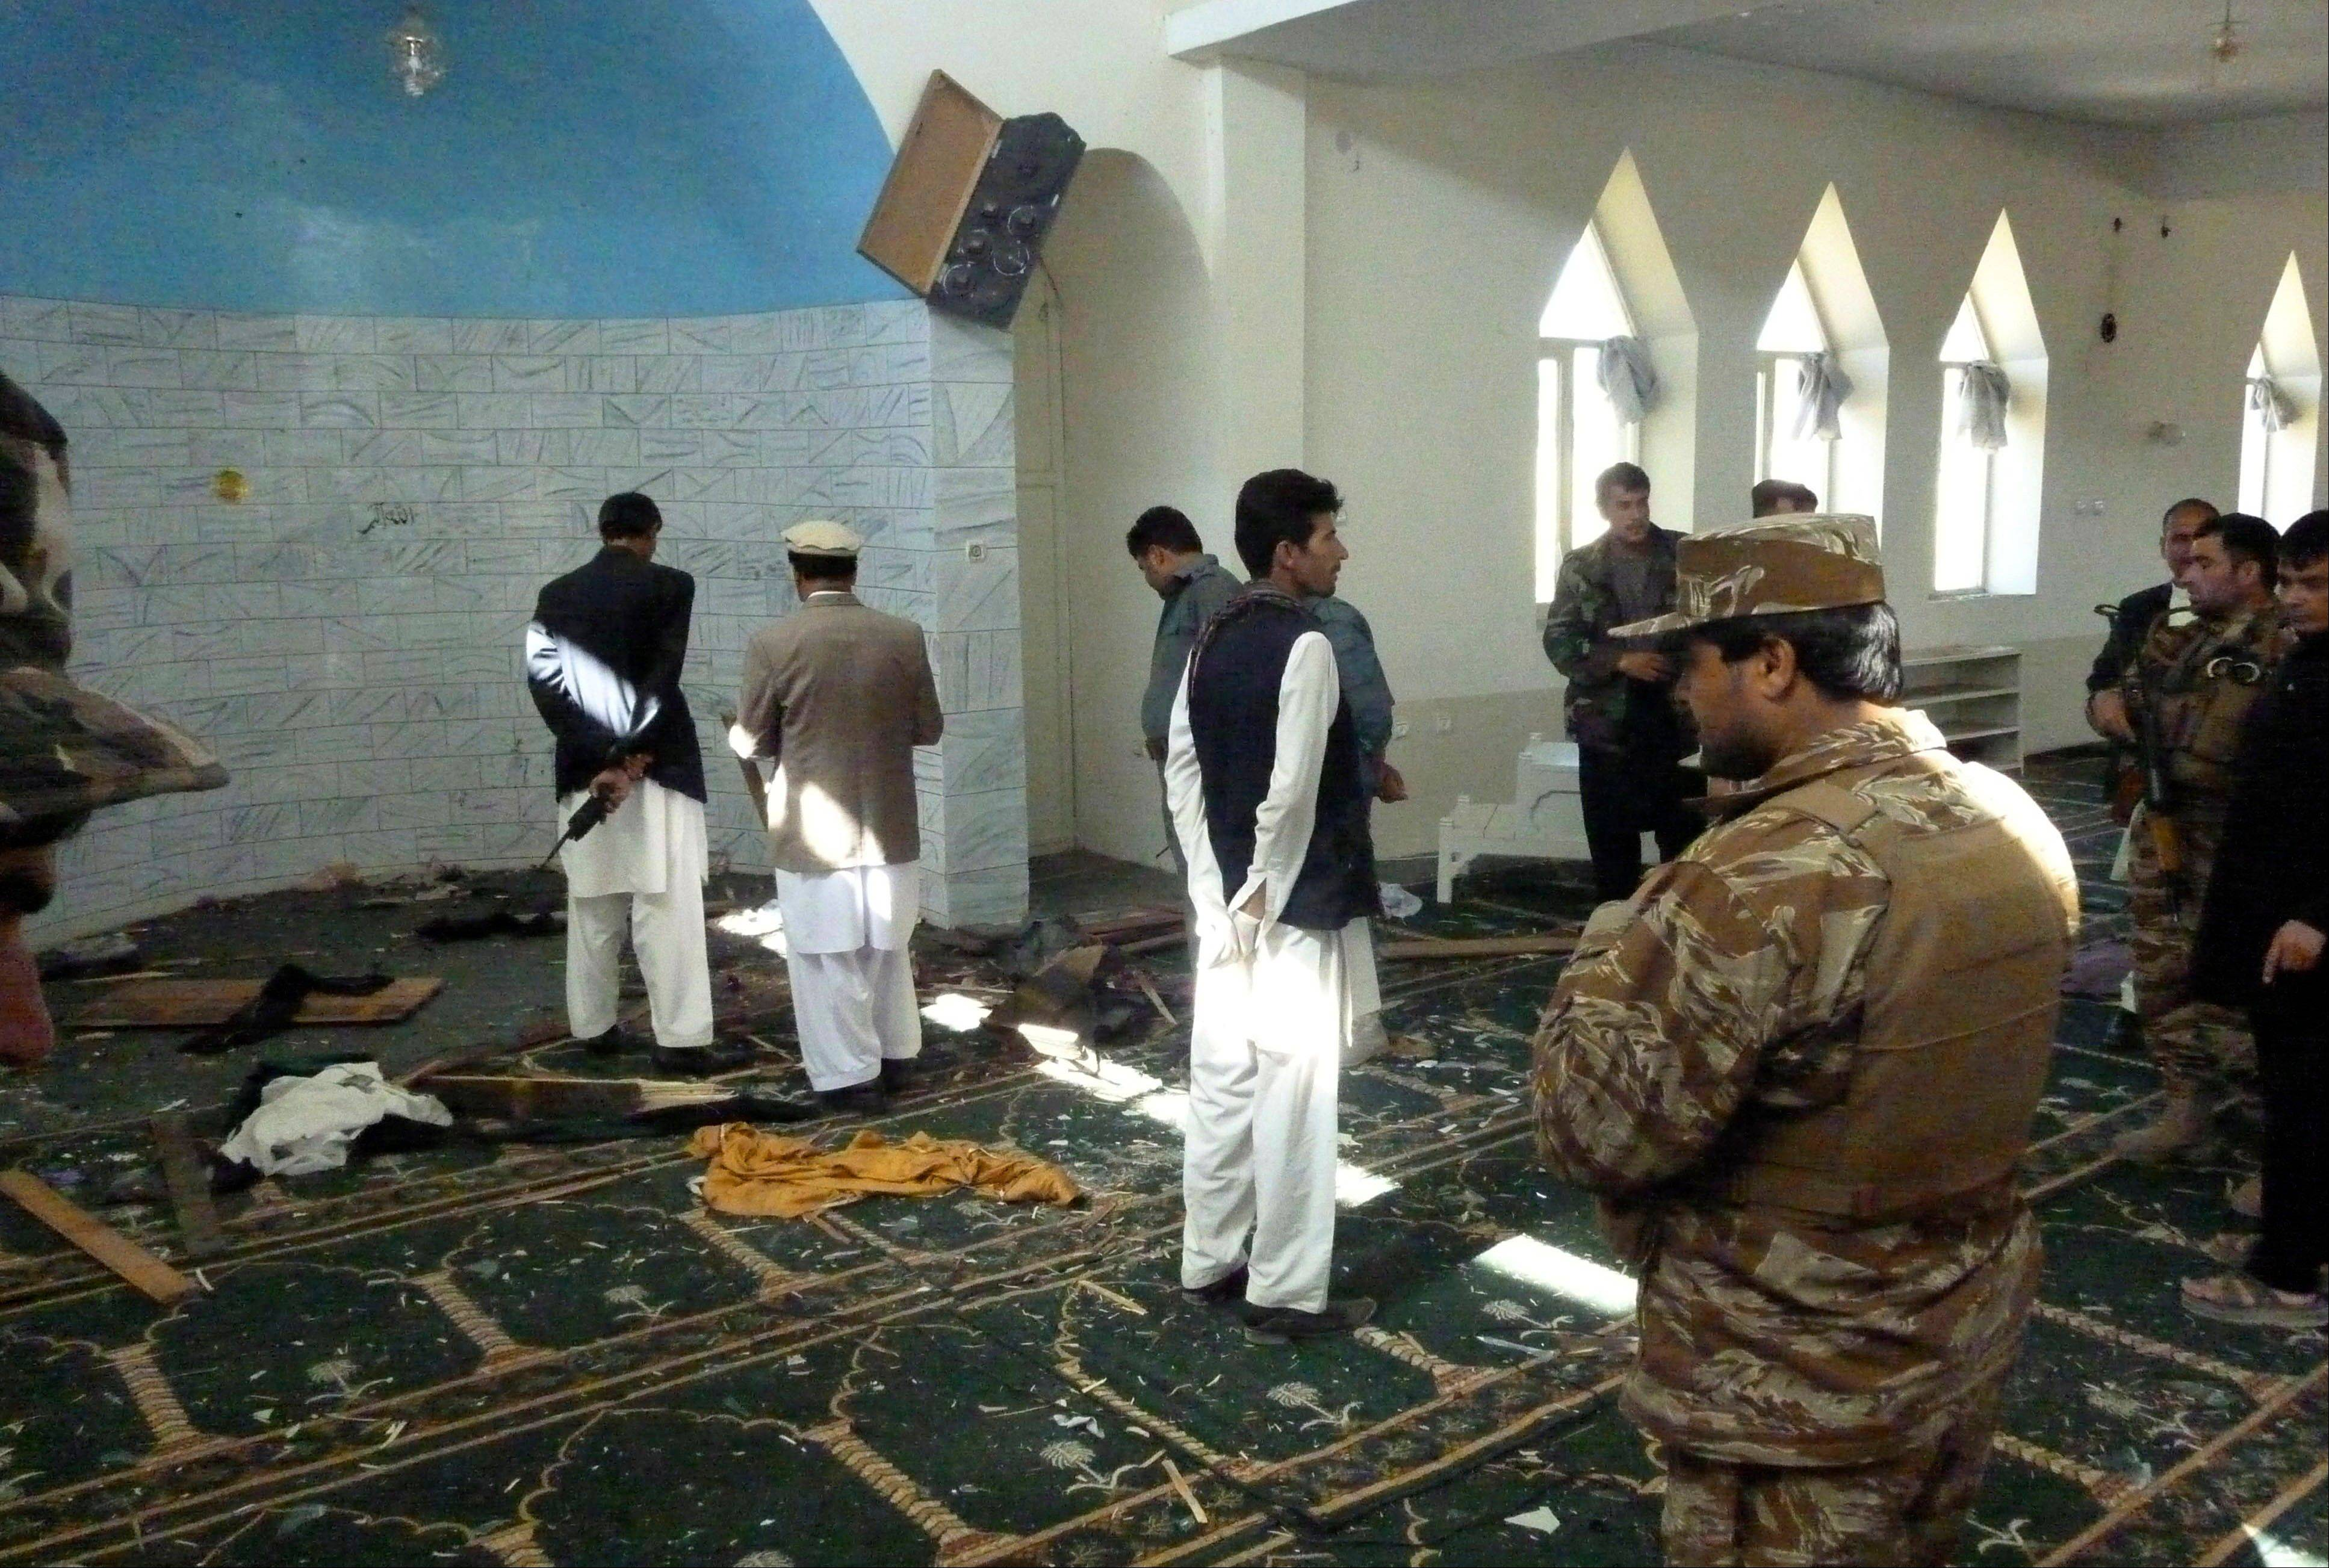 Afghan police and officials examine the mosque in Puli Alam, Logar Province, Afghanistan, where a bomb hidden in the base of a microphone killed Afghan Governor Arsallah Jamal, Tuesday, Oct 15, 2013. No one immediately claimed responsibility for the attack but the Taliban have been targeting Afghan officials, military and NATO troops as part of a campaign to retake territory as international troops draw down ahead of a full pullout at the end of 2014.